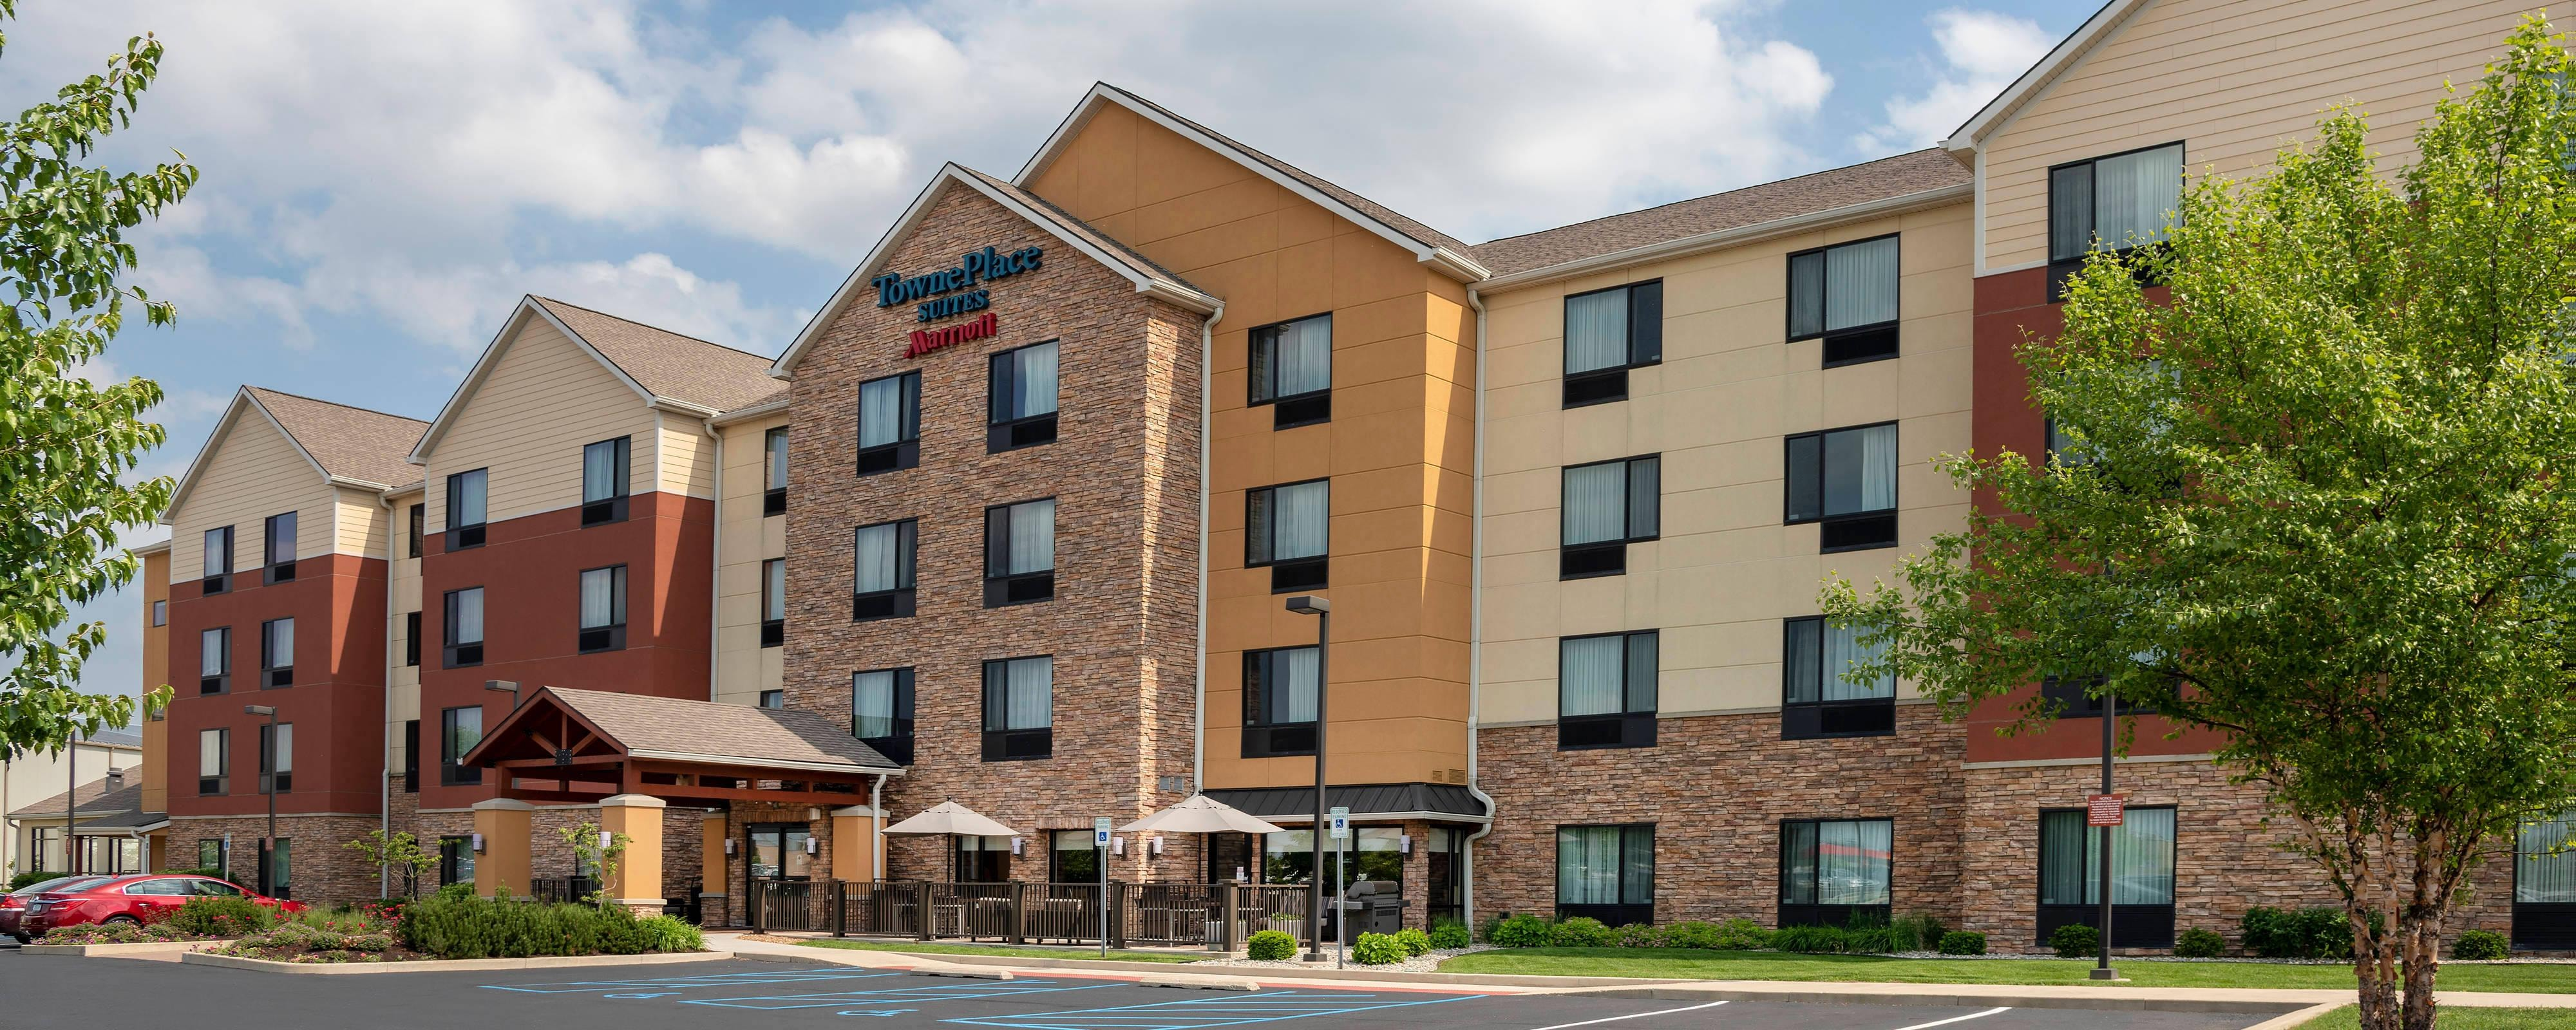 Fort Wayne Hotel Suites | TownePlace Suites